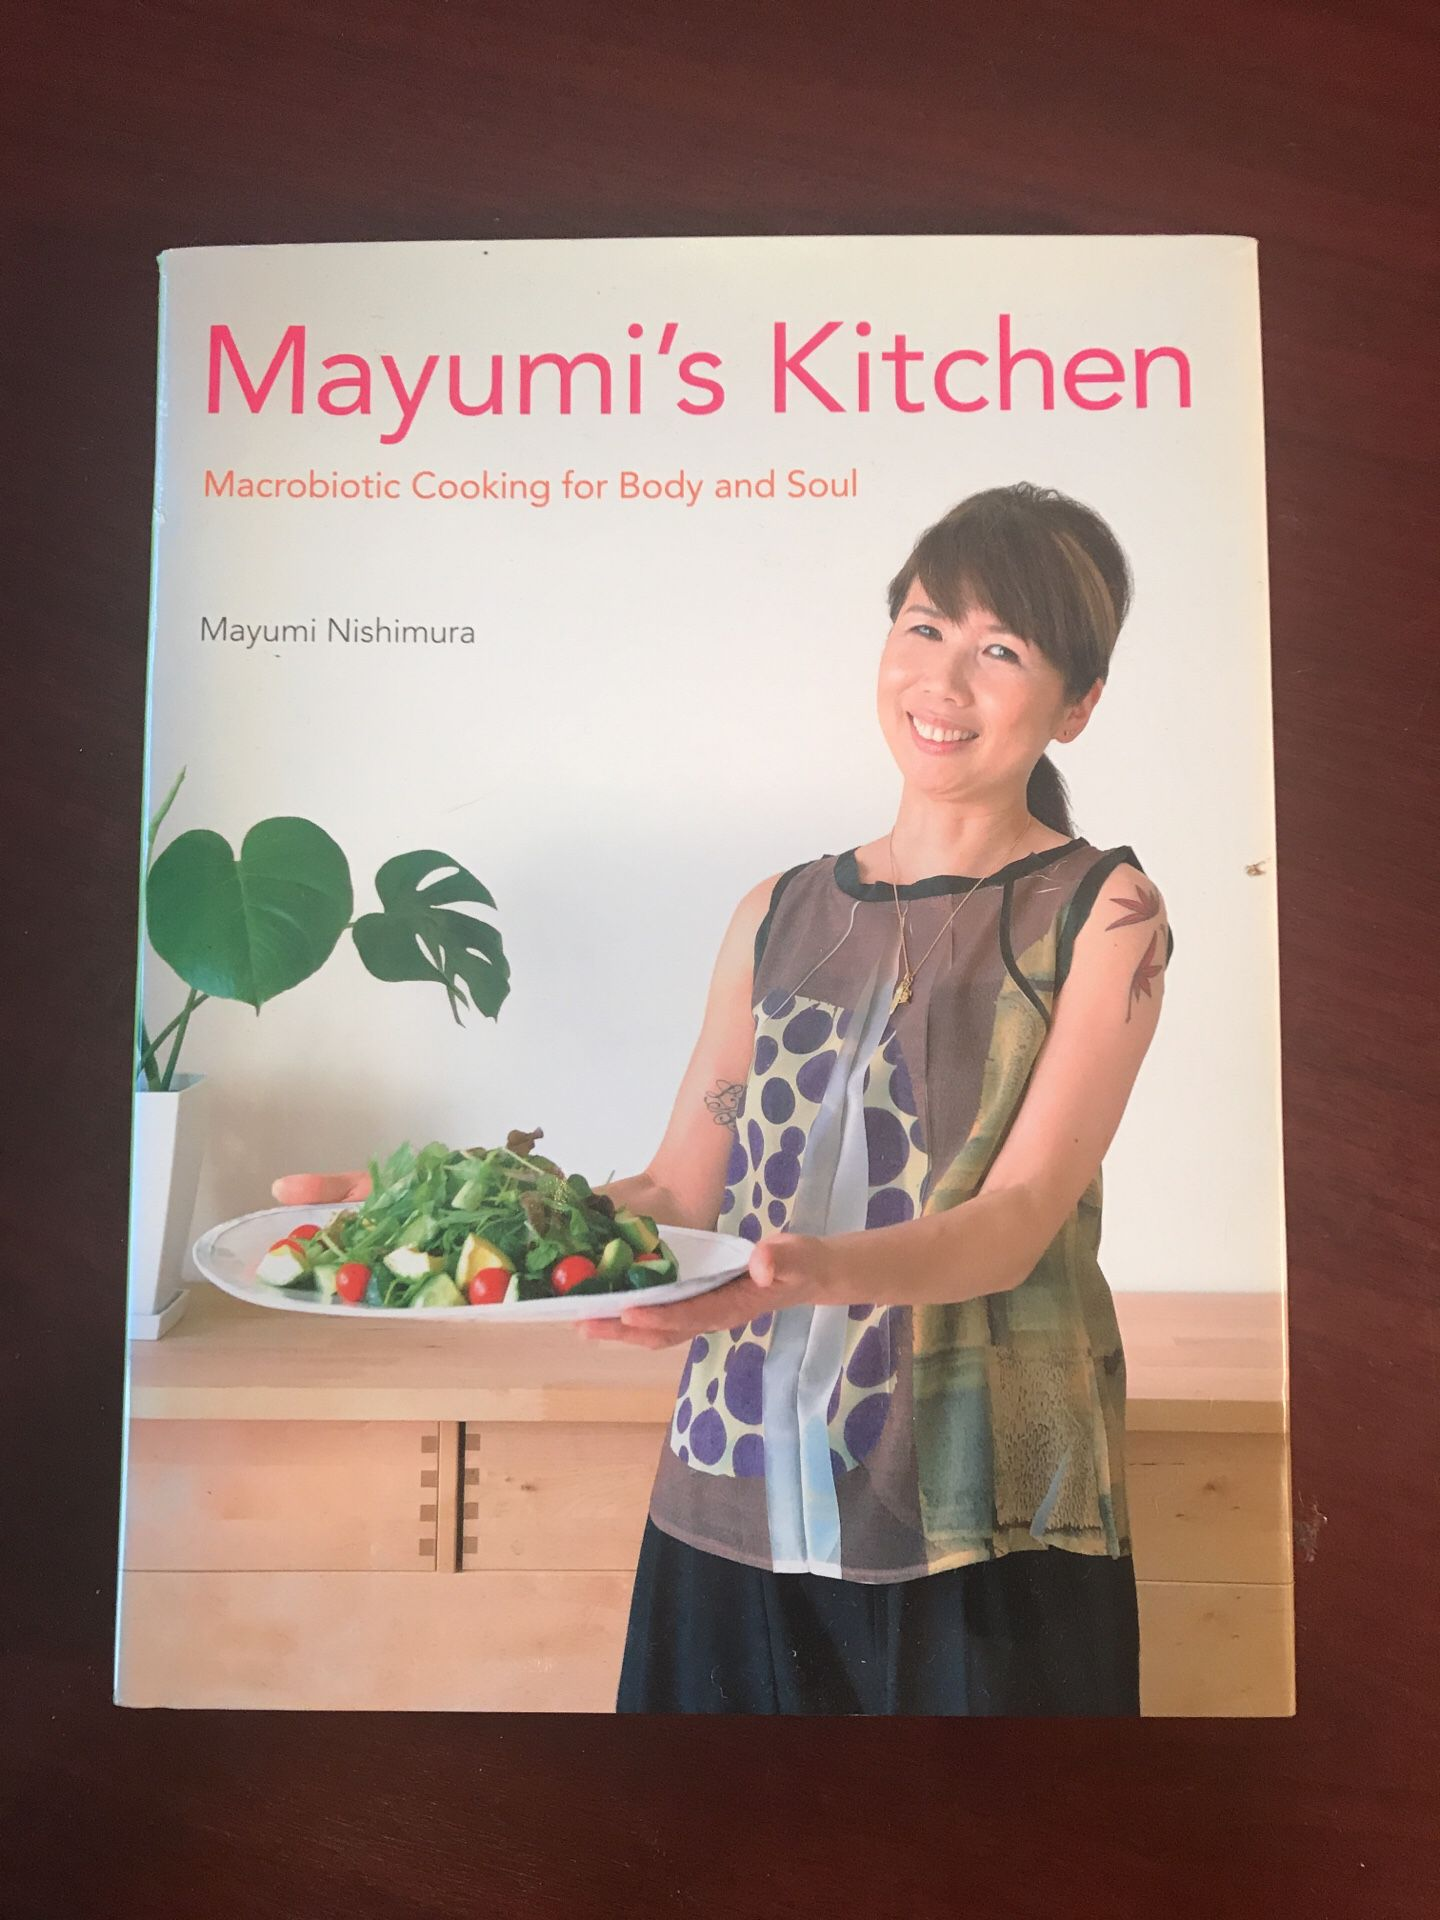 Macrobiotic cooking for body and soul